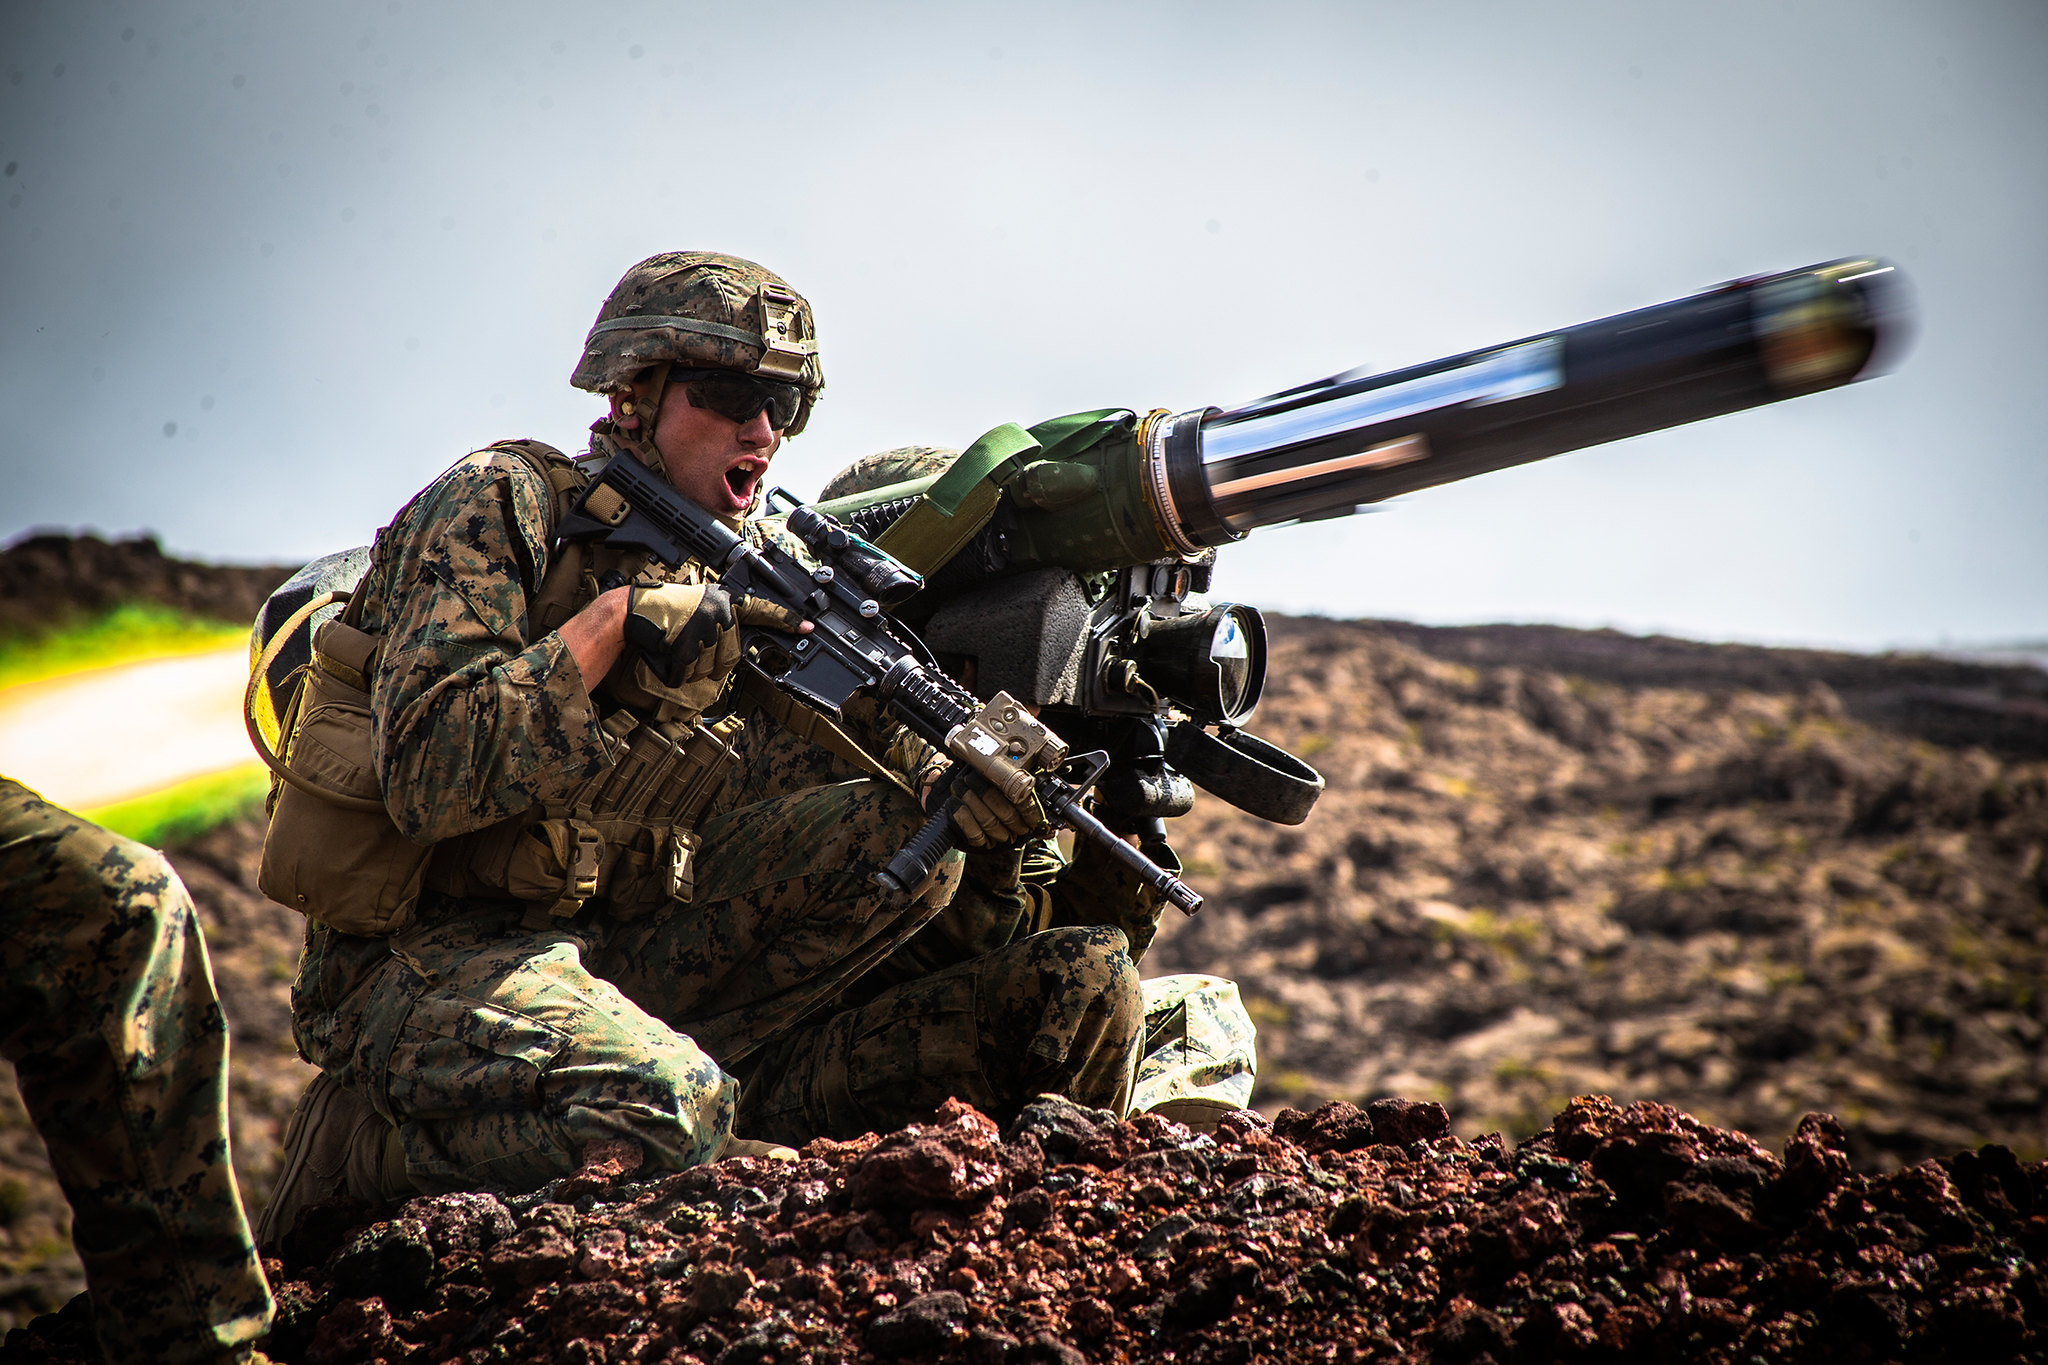 Marine Corps Sgt. Troy Mole fires a shoulder-fired Javelin missile during Exercise Bougainville II at Pohakuloa Training Area, Hawaii, May 15, 2019. (Lance Cpl. Jacob Wilson/Marine Corps)